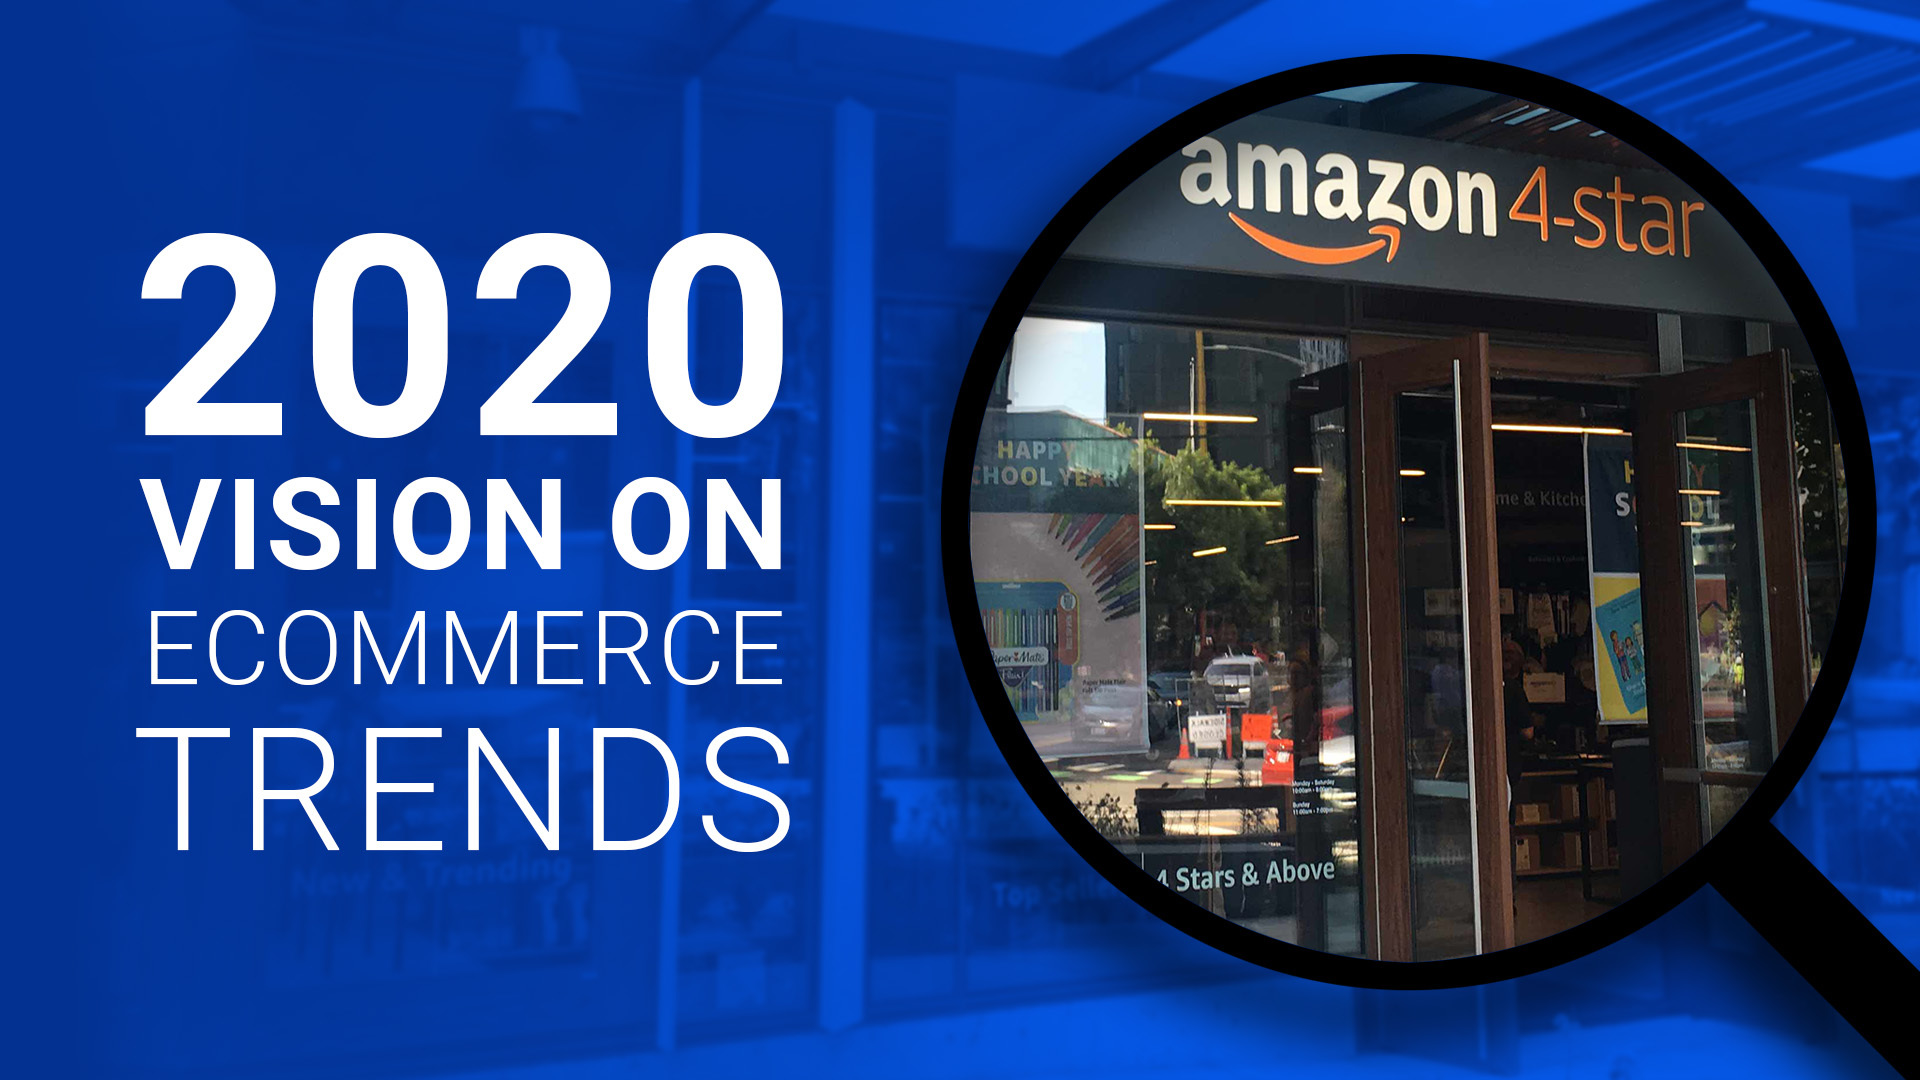 2020 Vision on Ecommerce Trends